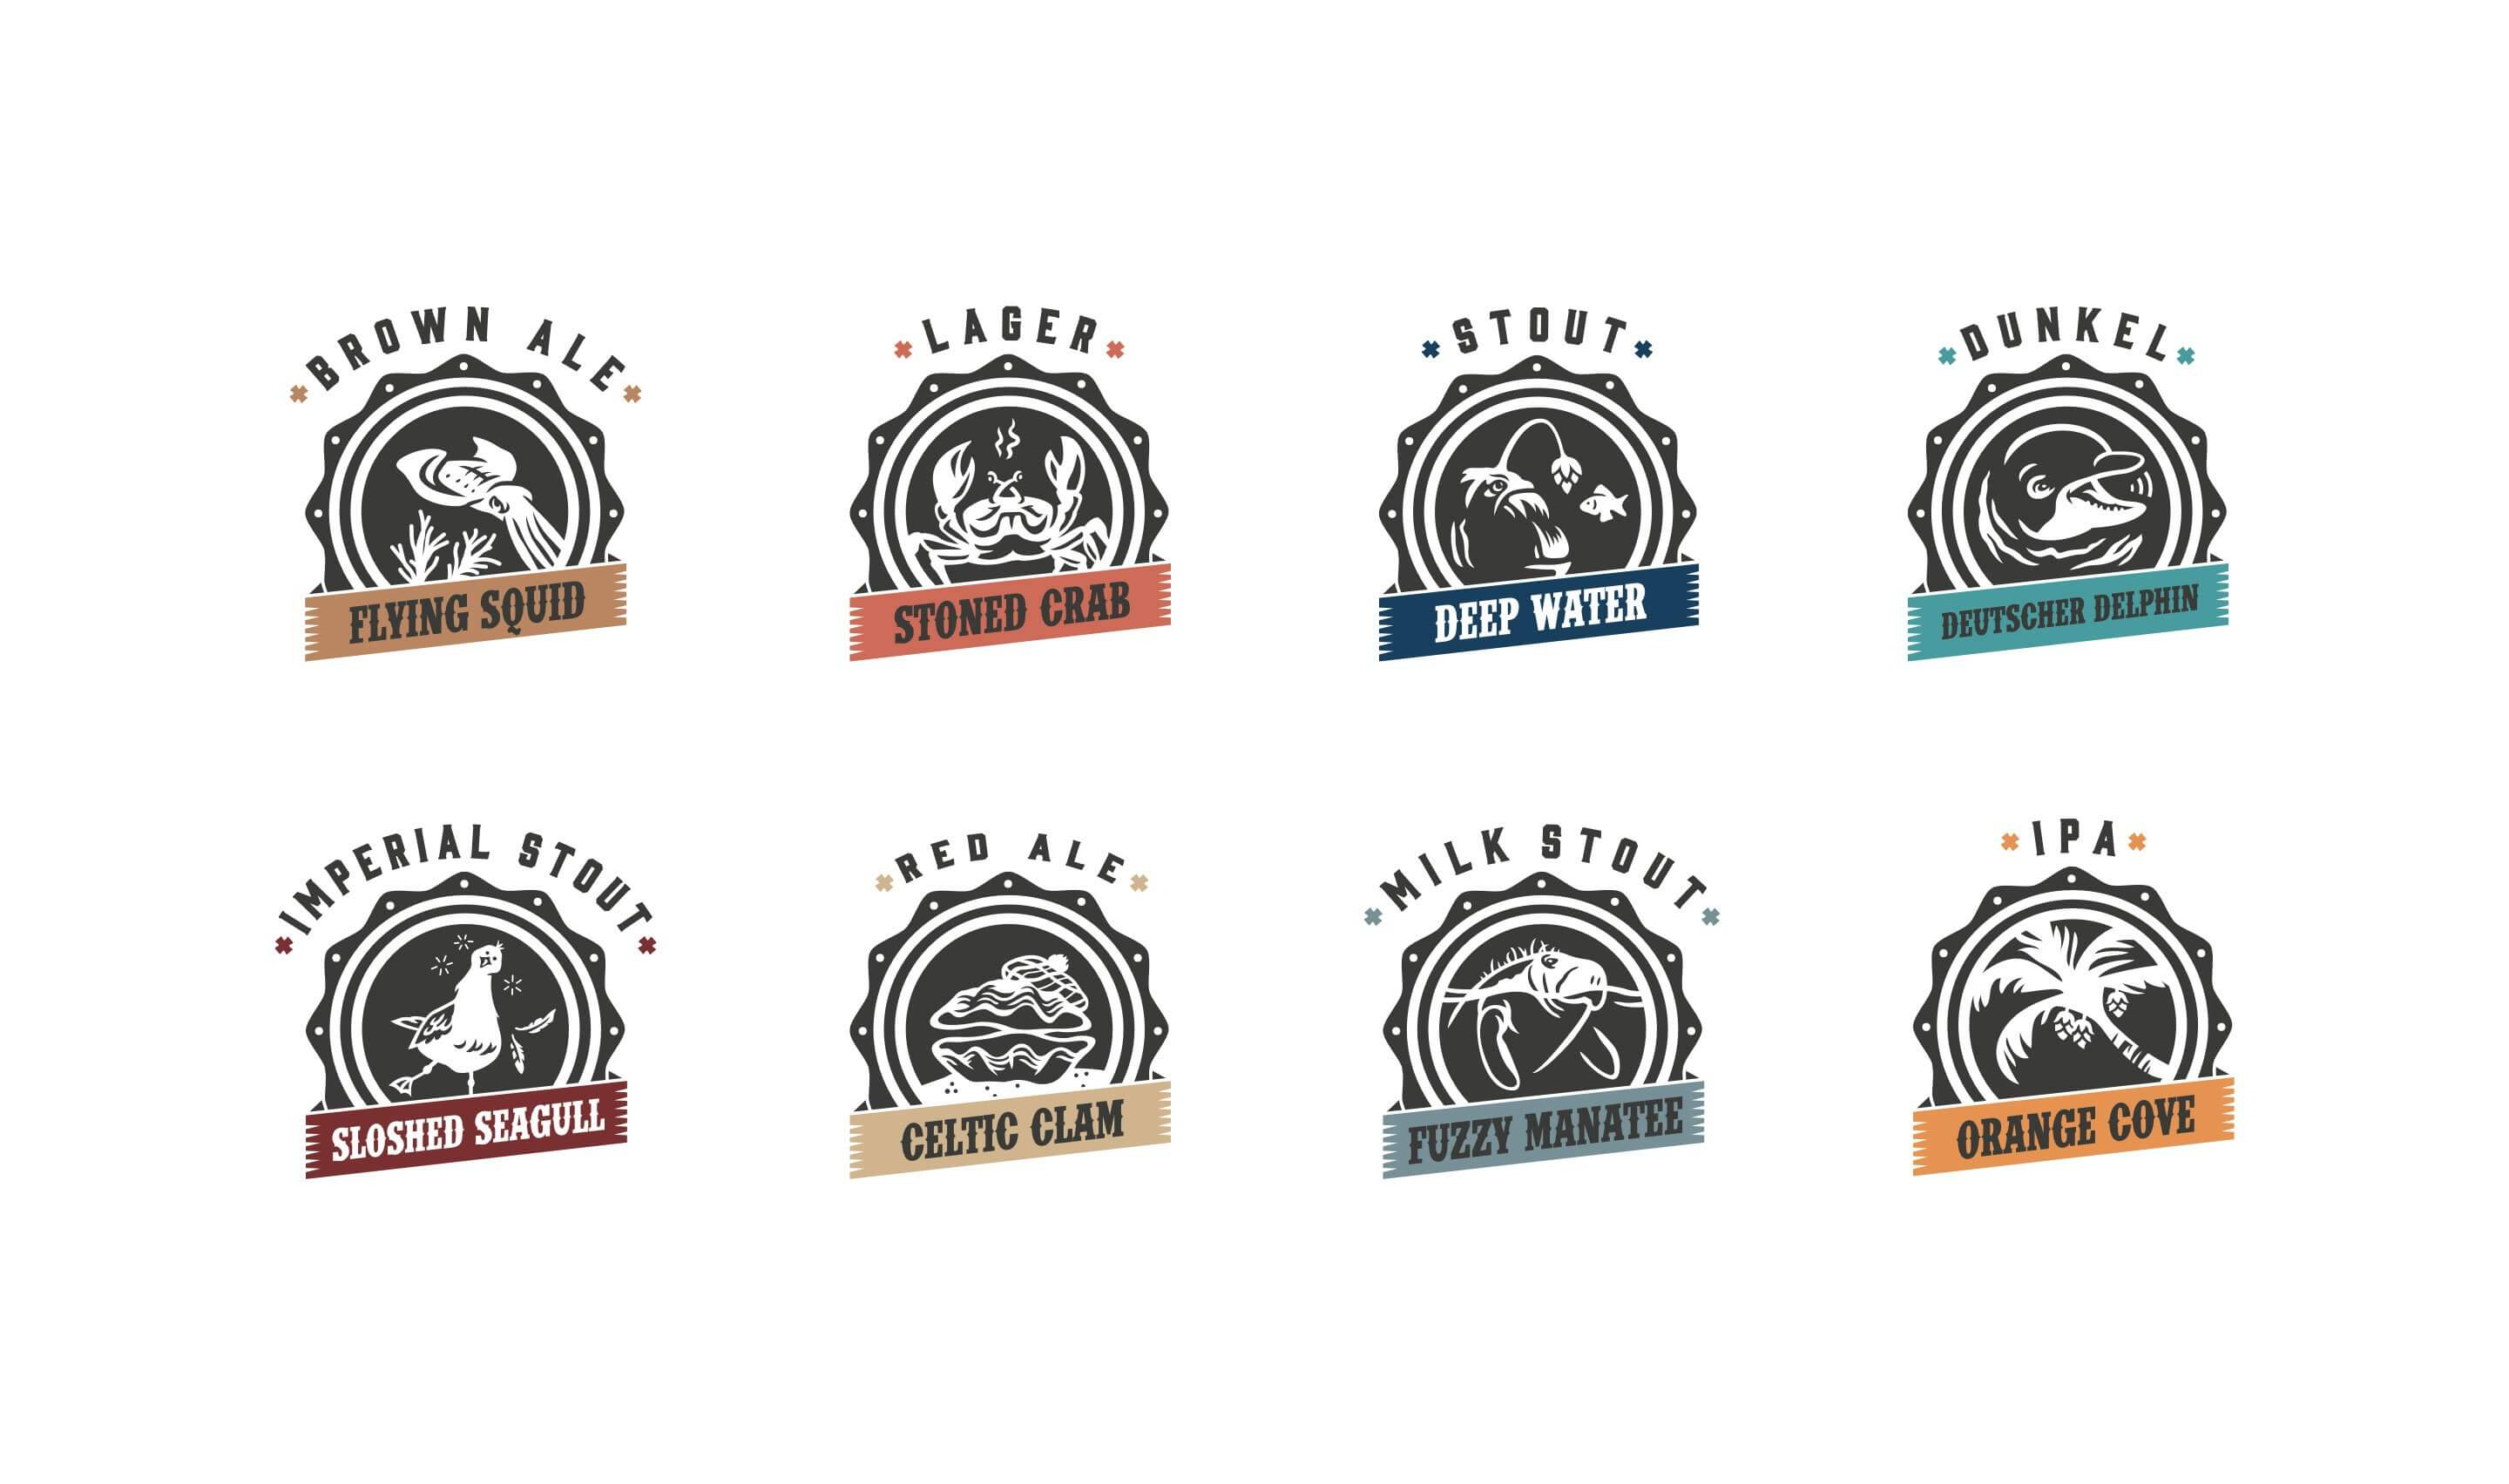 Magic waters beer logo illustration set